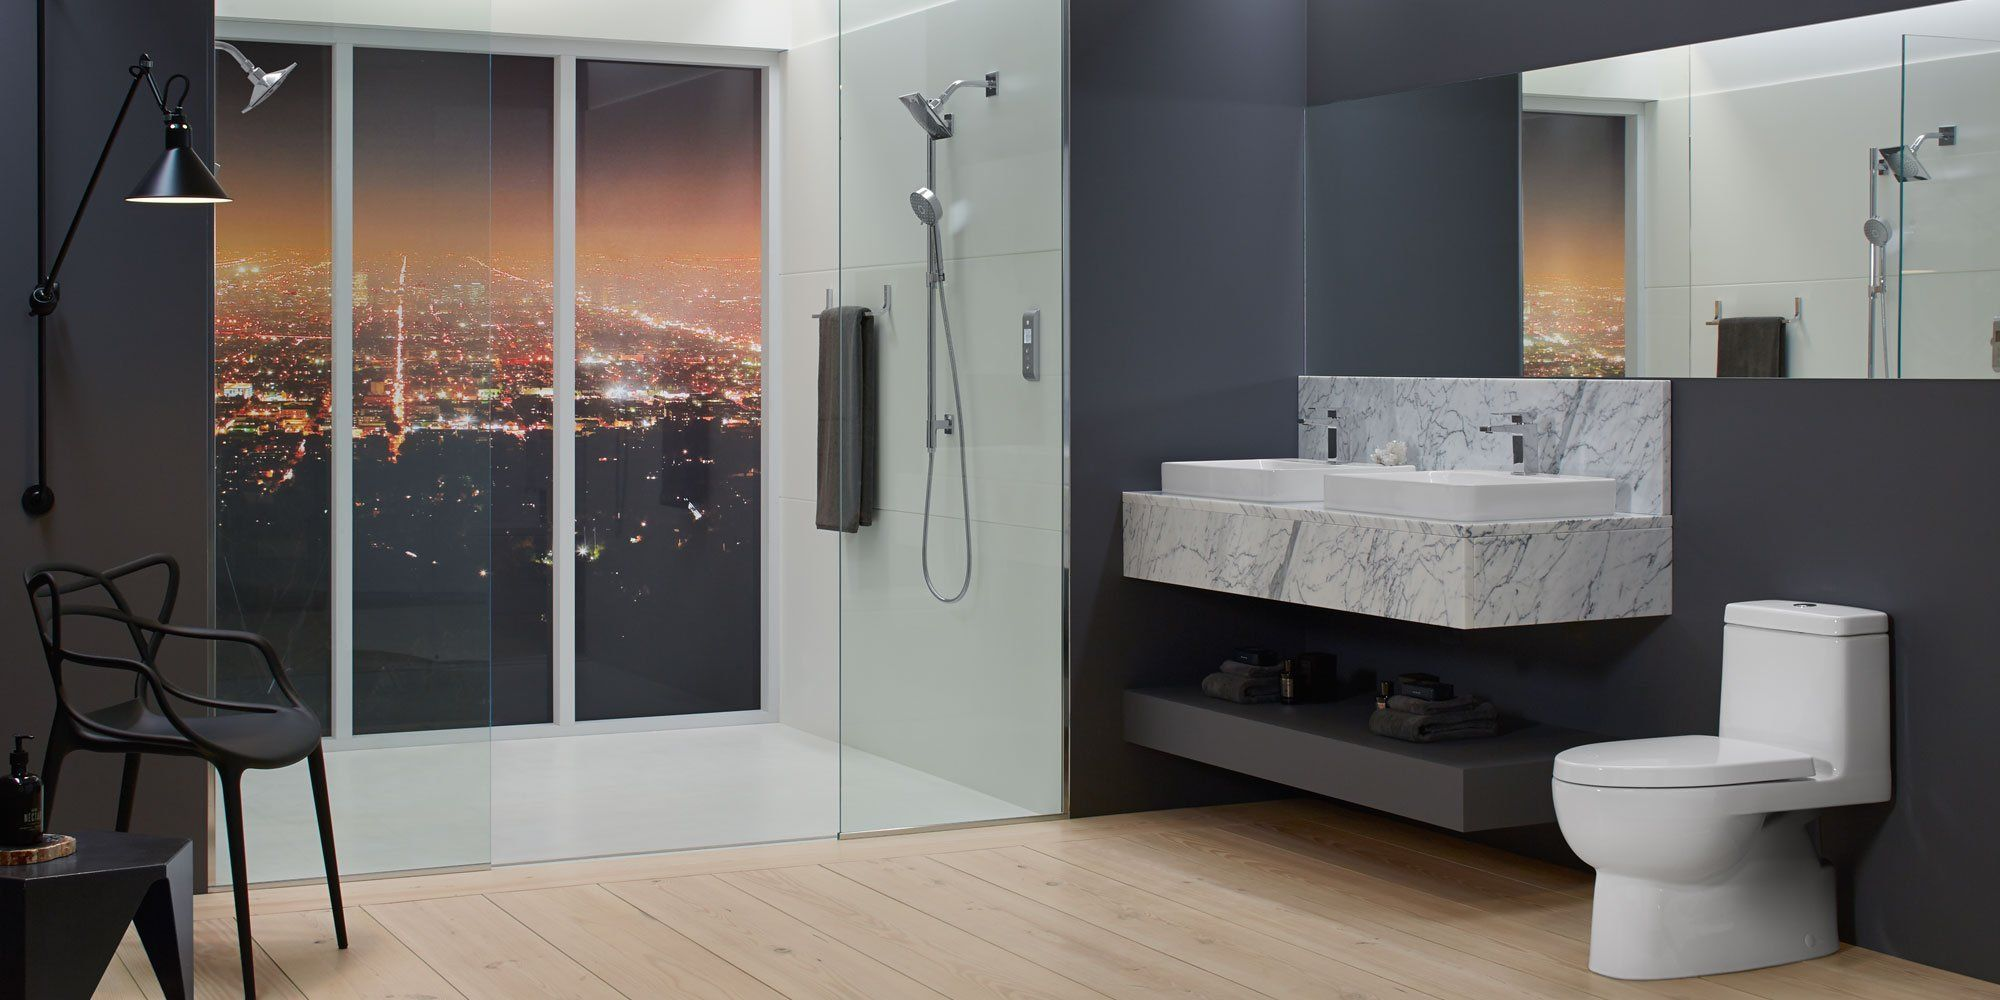 Kohler modern bathroom design with walk in shower